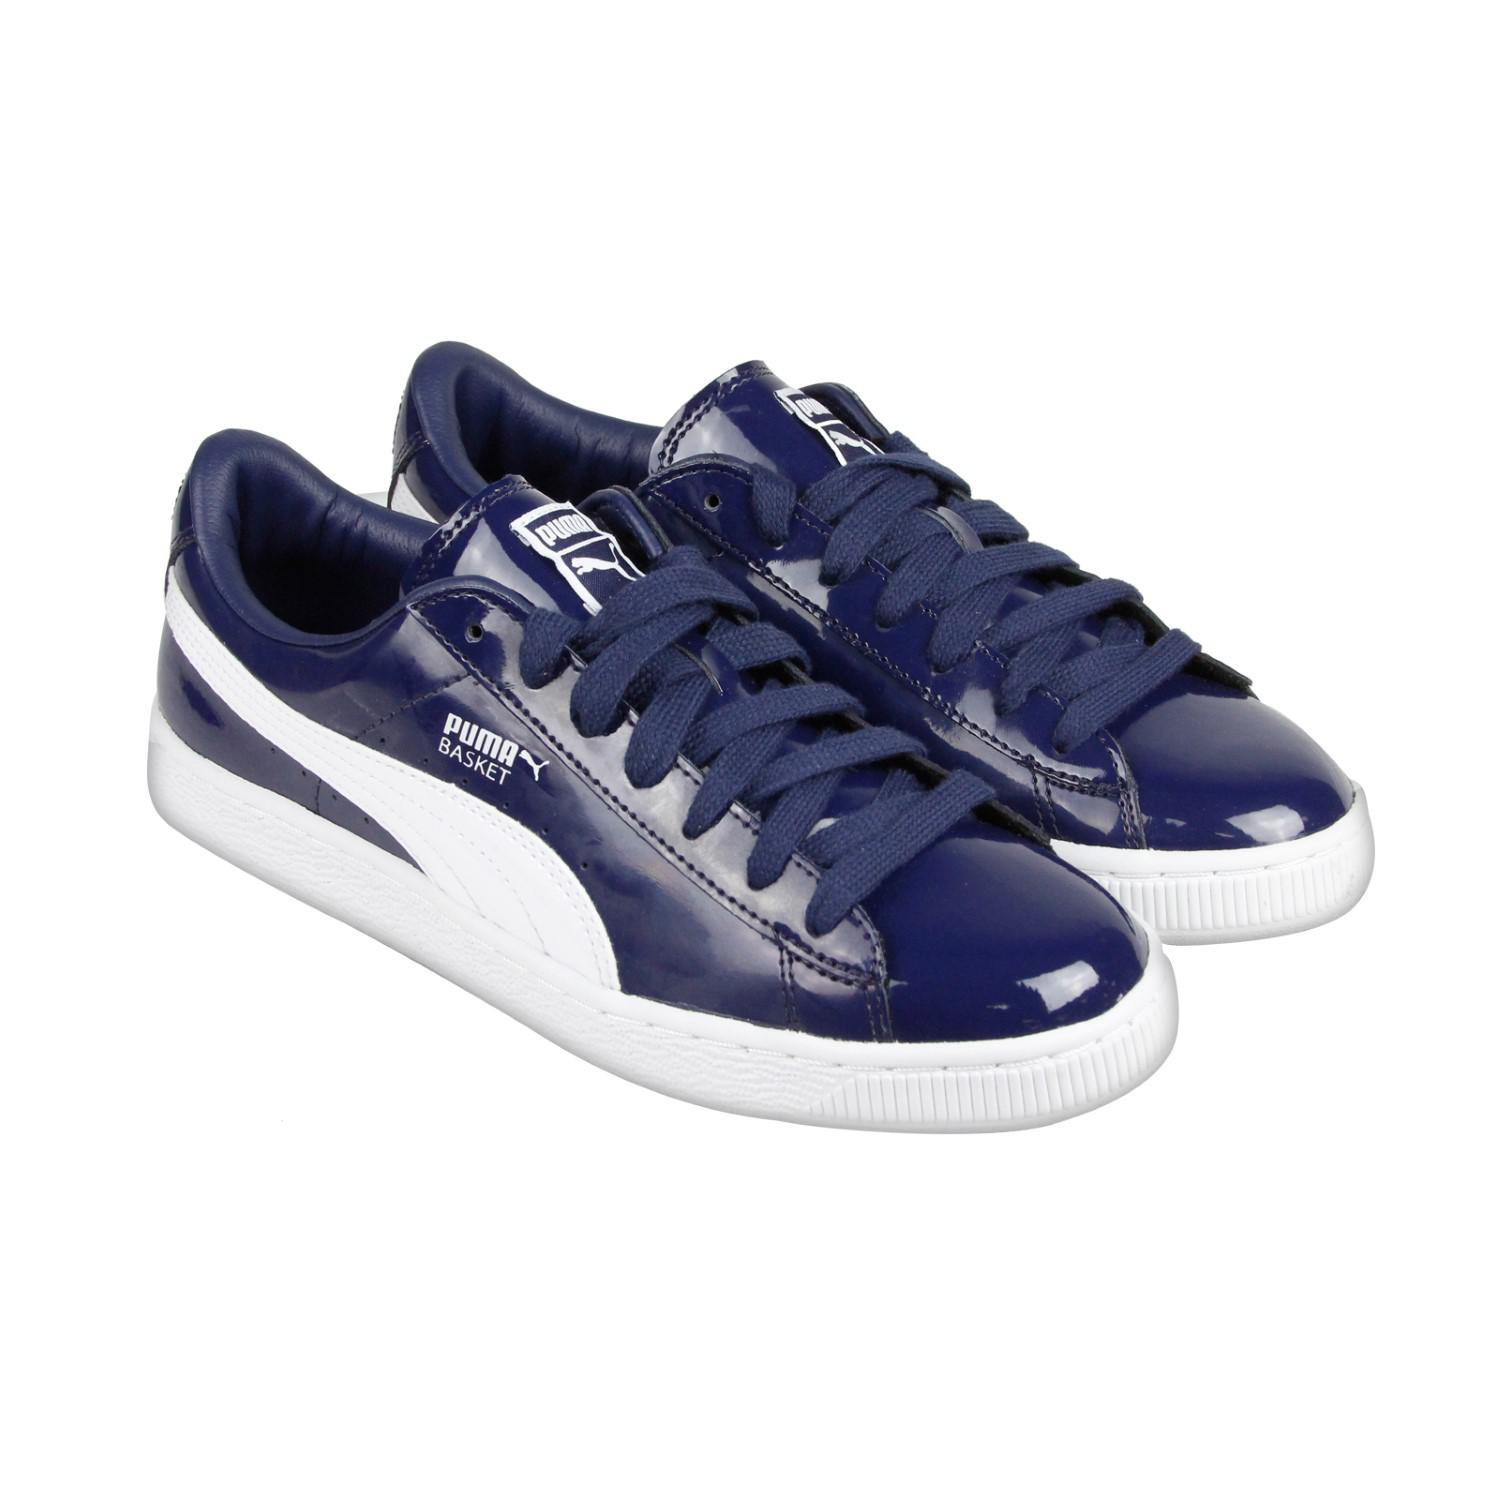 db459fd0cd58 Lyst - Puma Basket Matte   Shine Peacoat White Lace Up Sneakers in ...